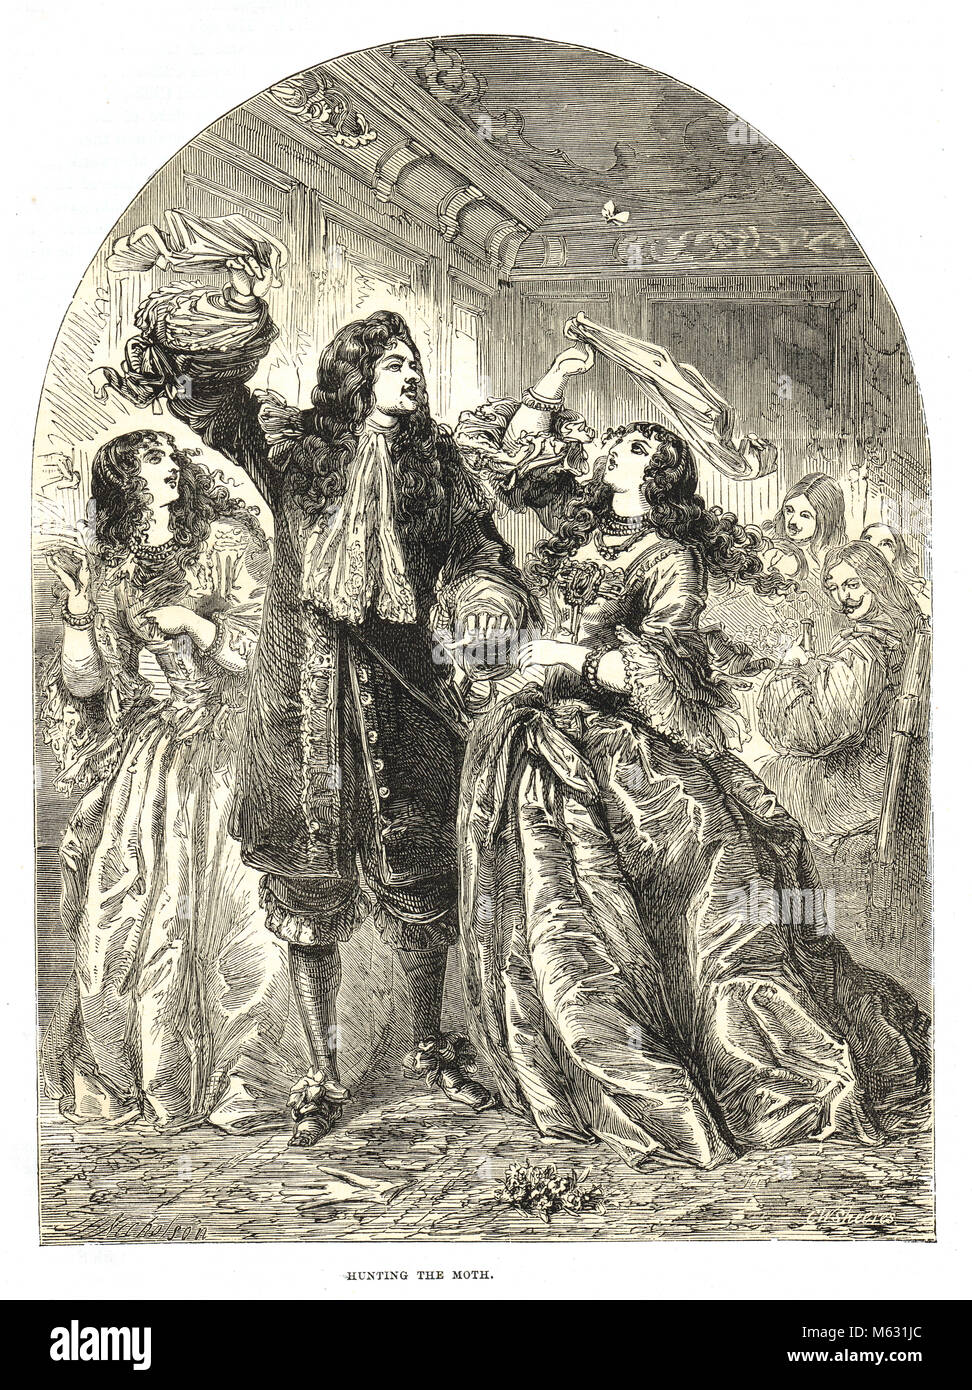 Charles II, the merry monarch, amusing himself with Ladies of his seraglio hunting a Moth, indifferent to the national - Stock Image